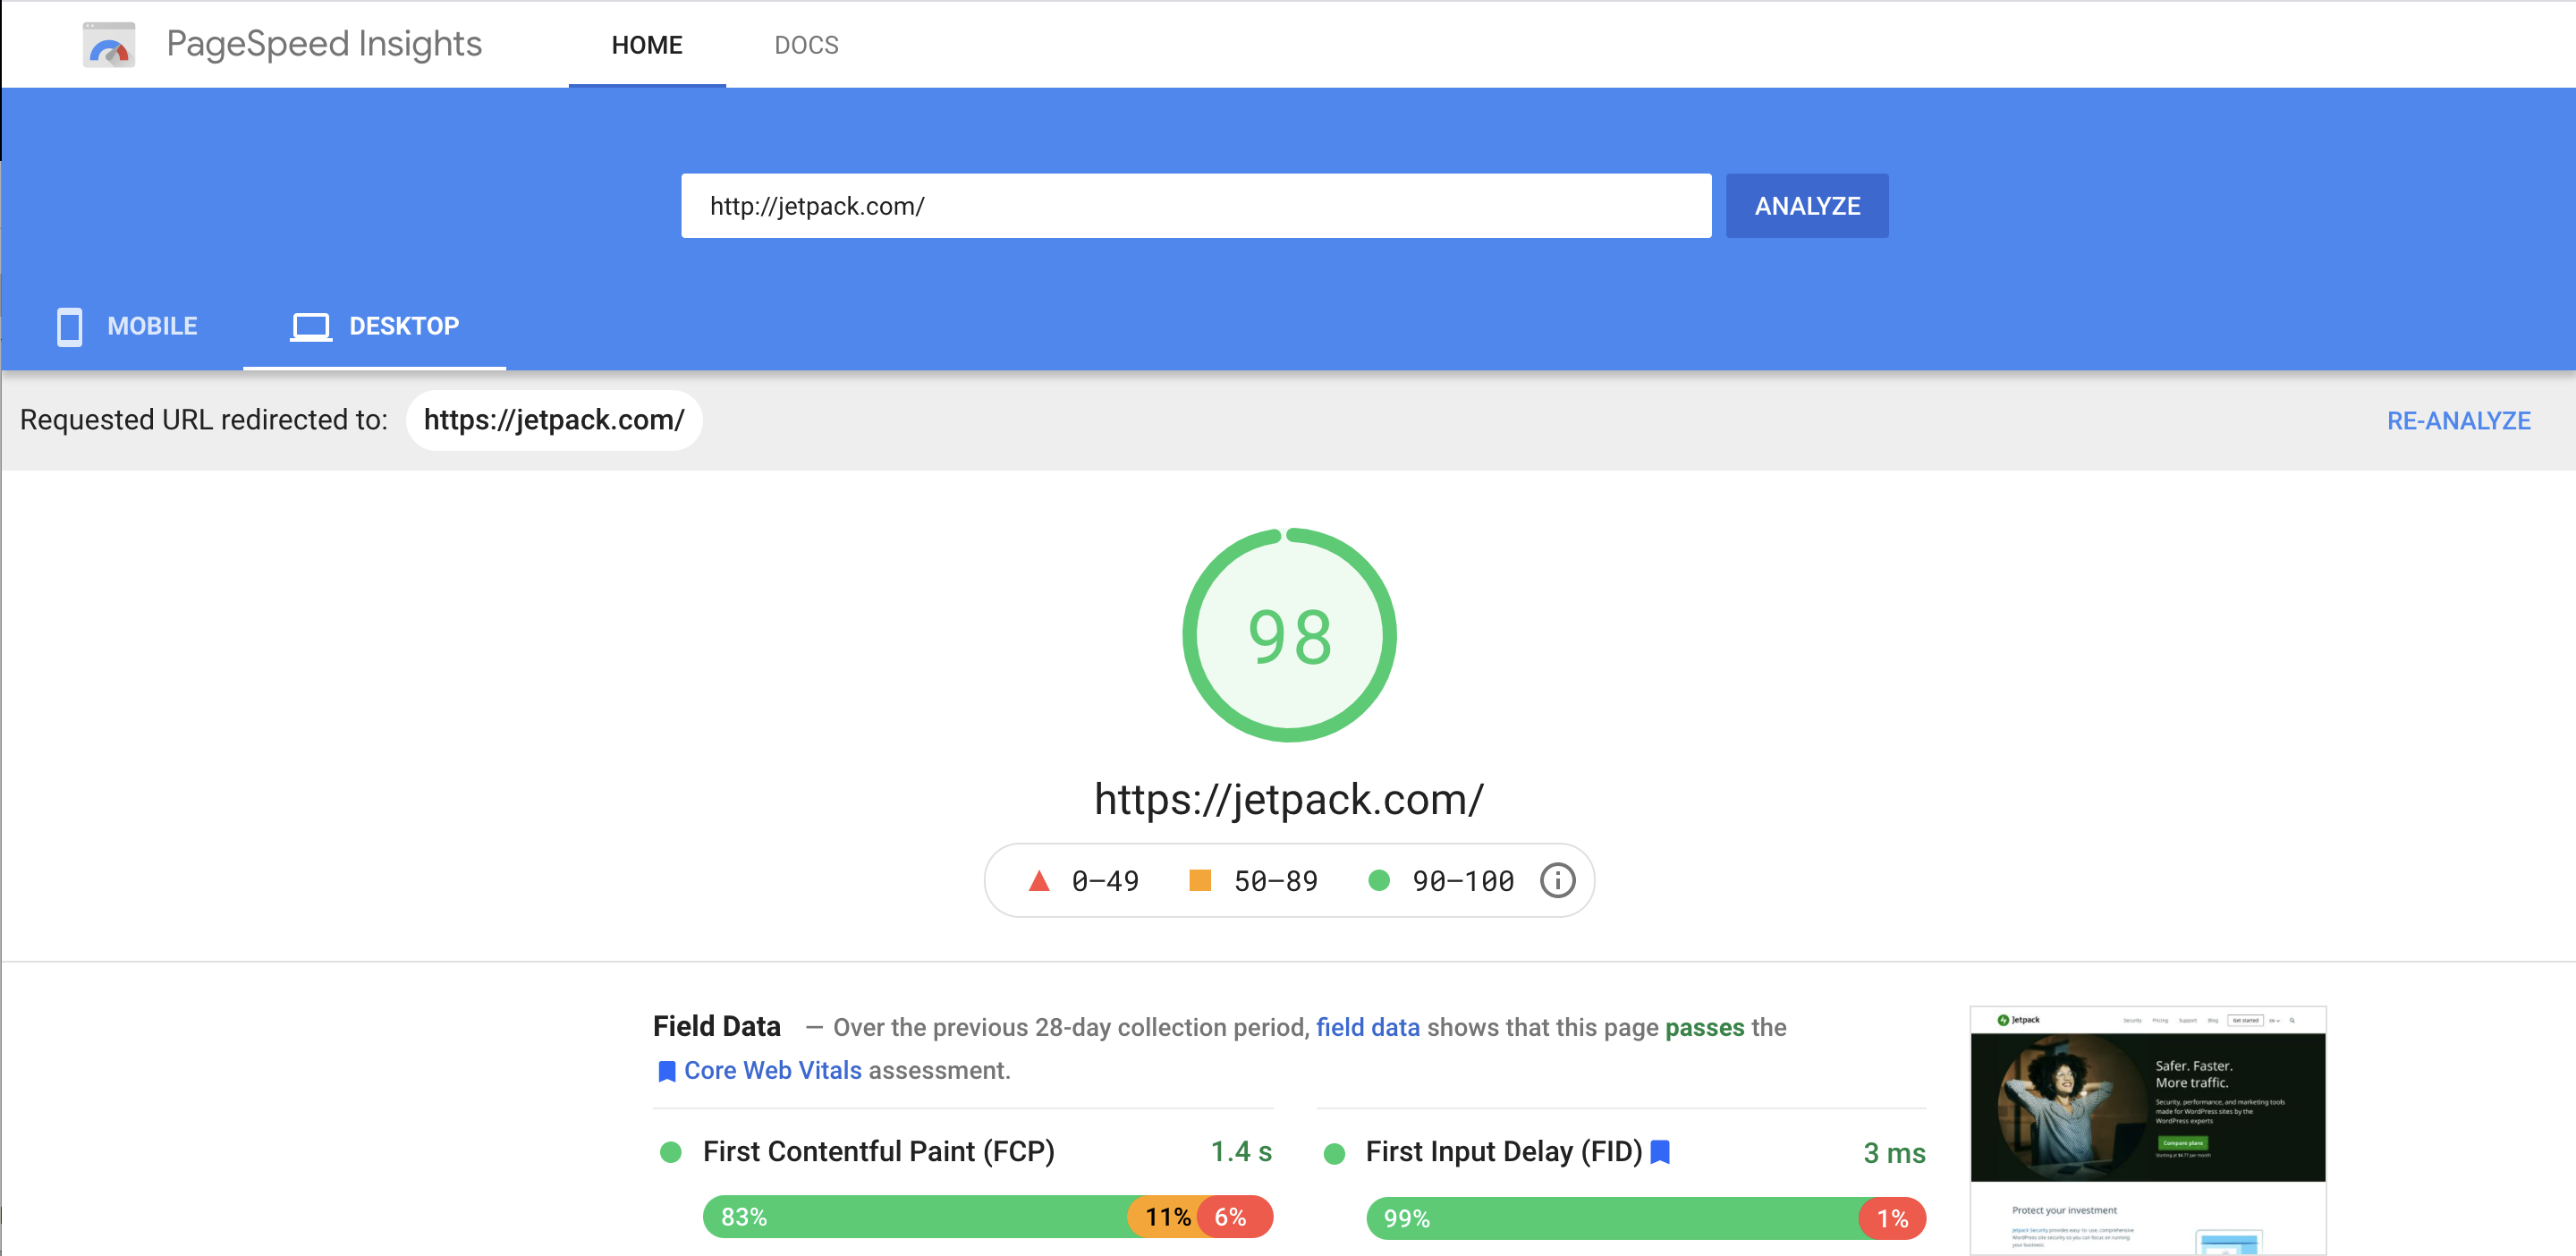 Google PageSpeed report for Jetpack.com